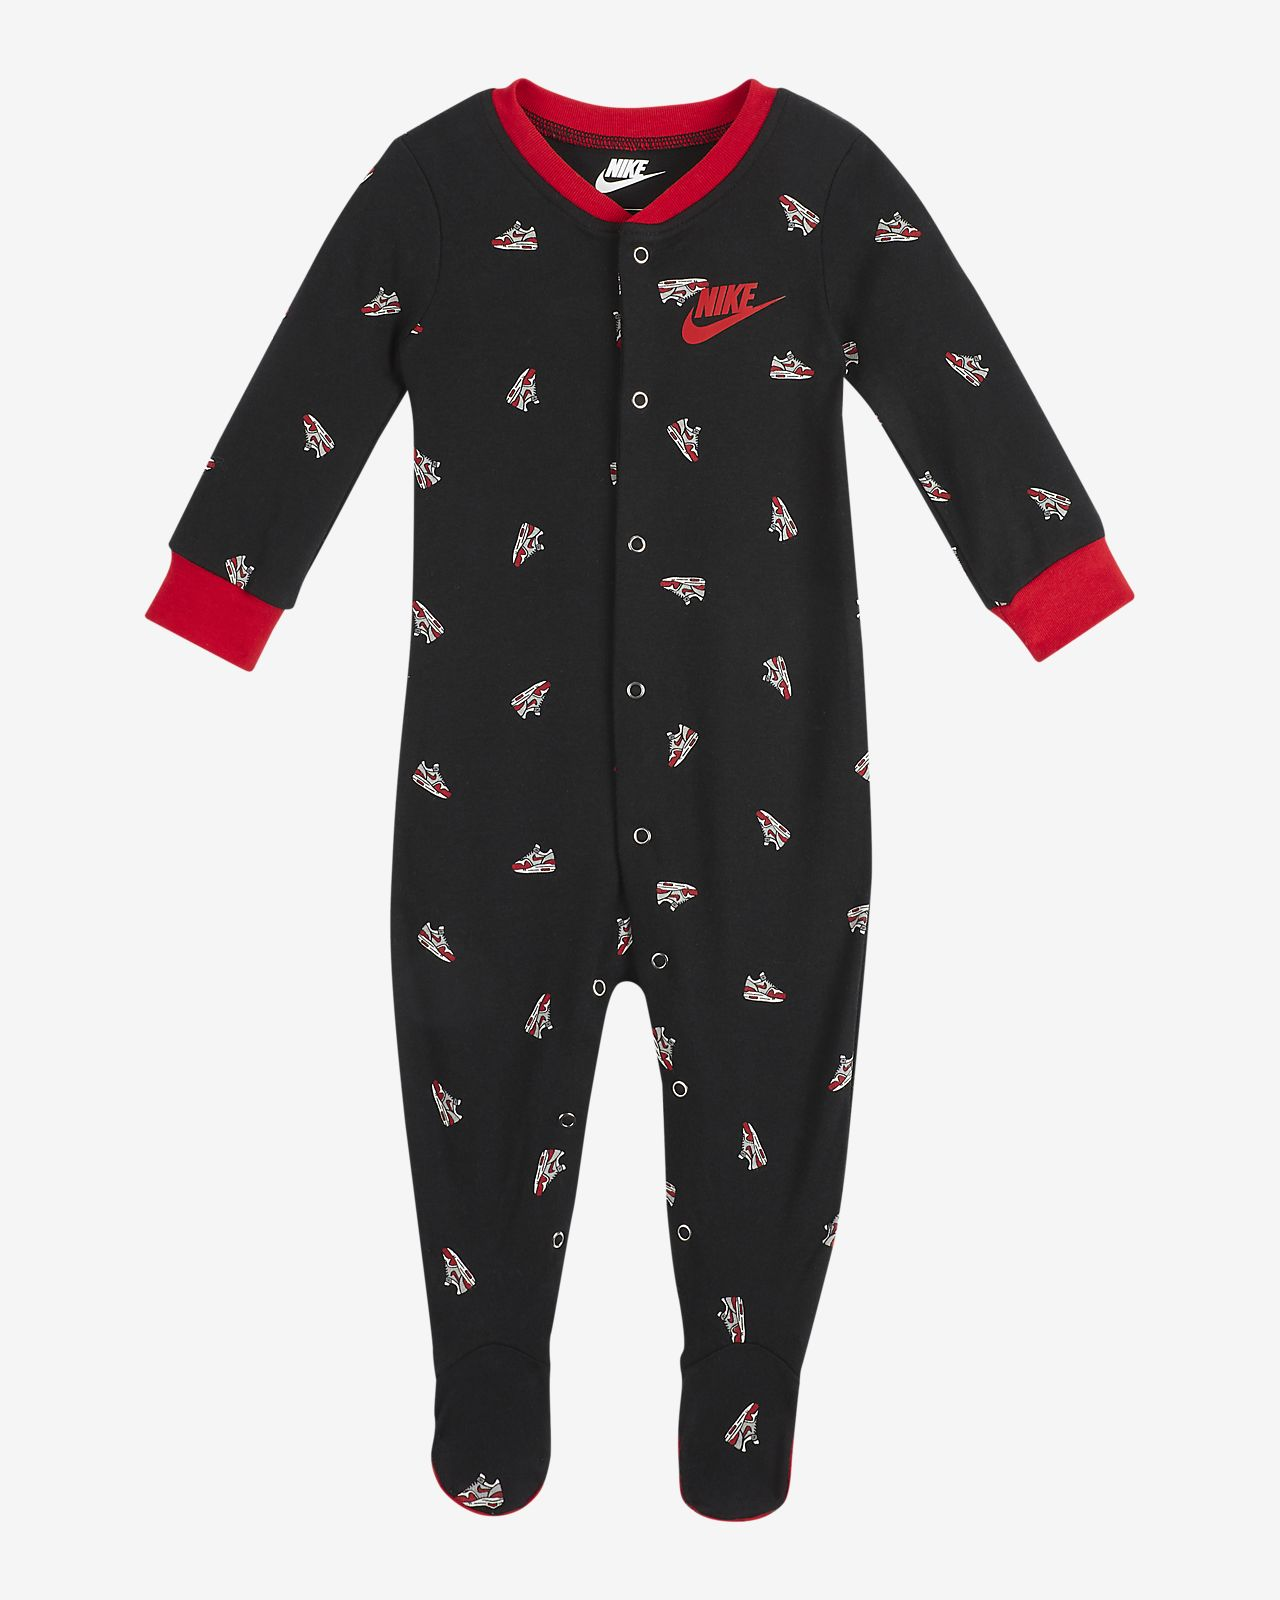 Nike Infant Footed Coveralls